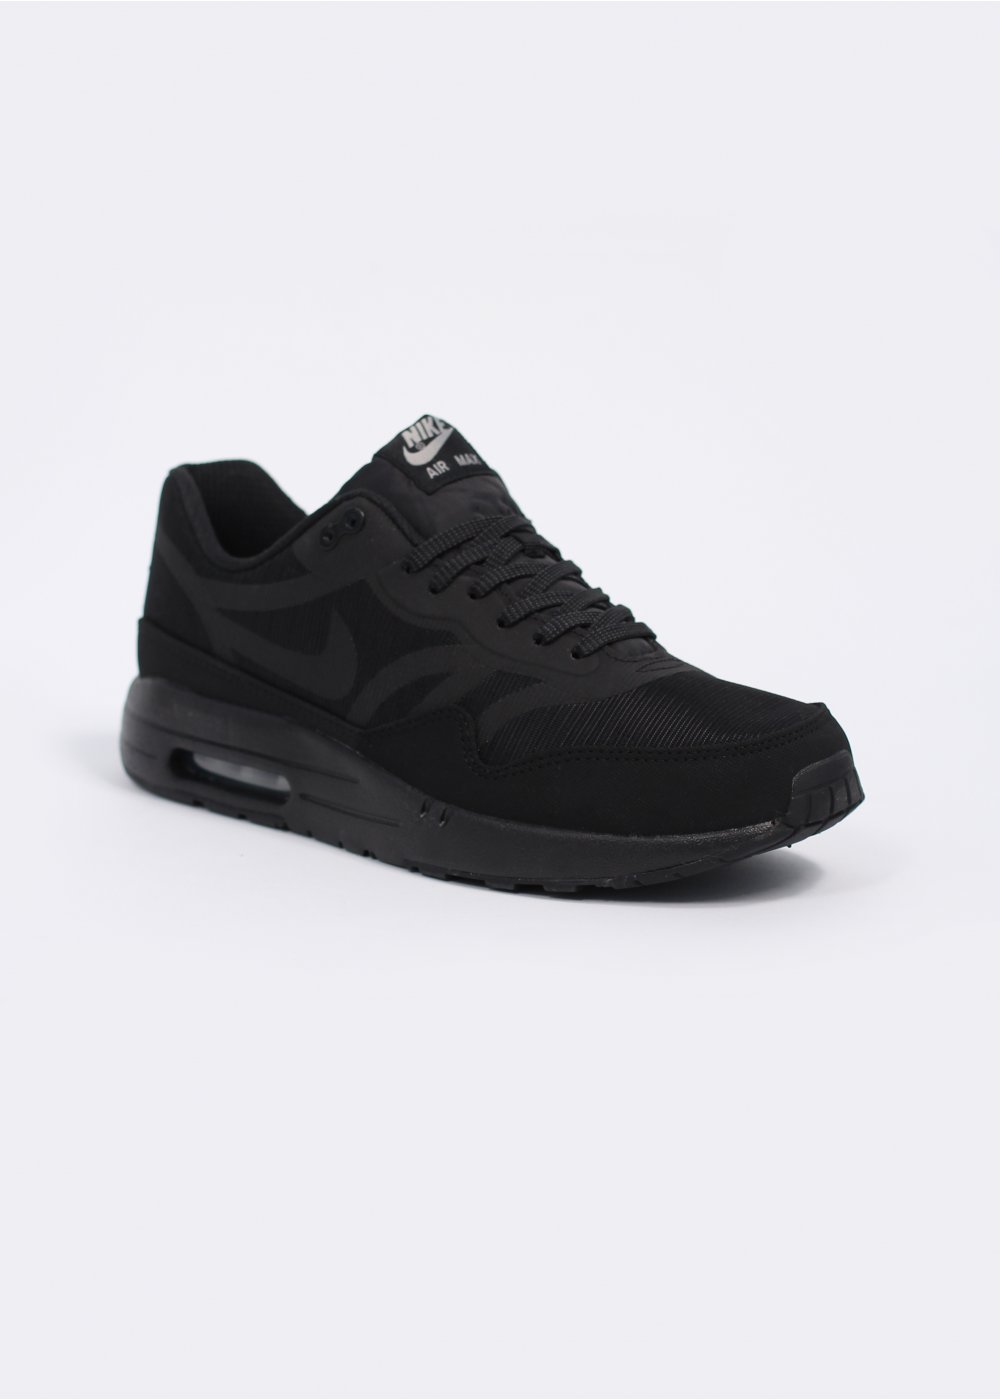 Mens Air Max 1 Sale